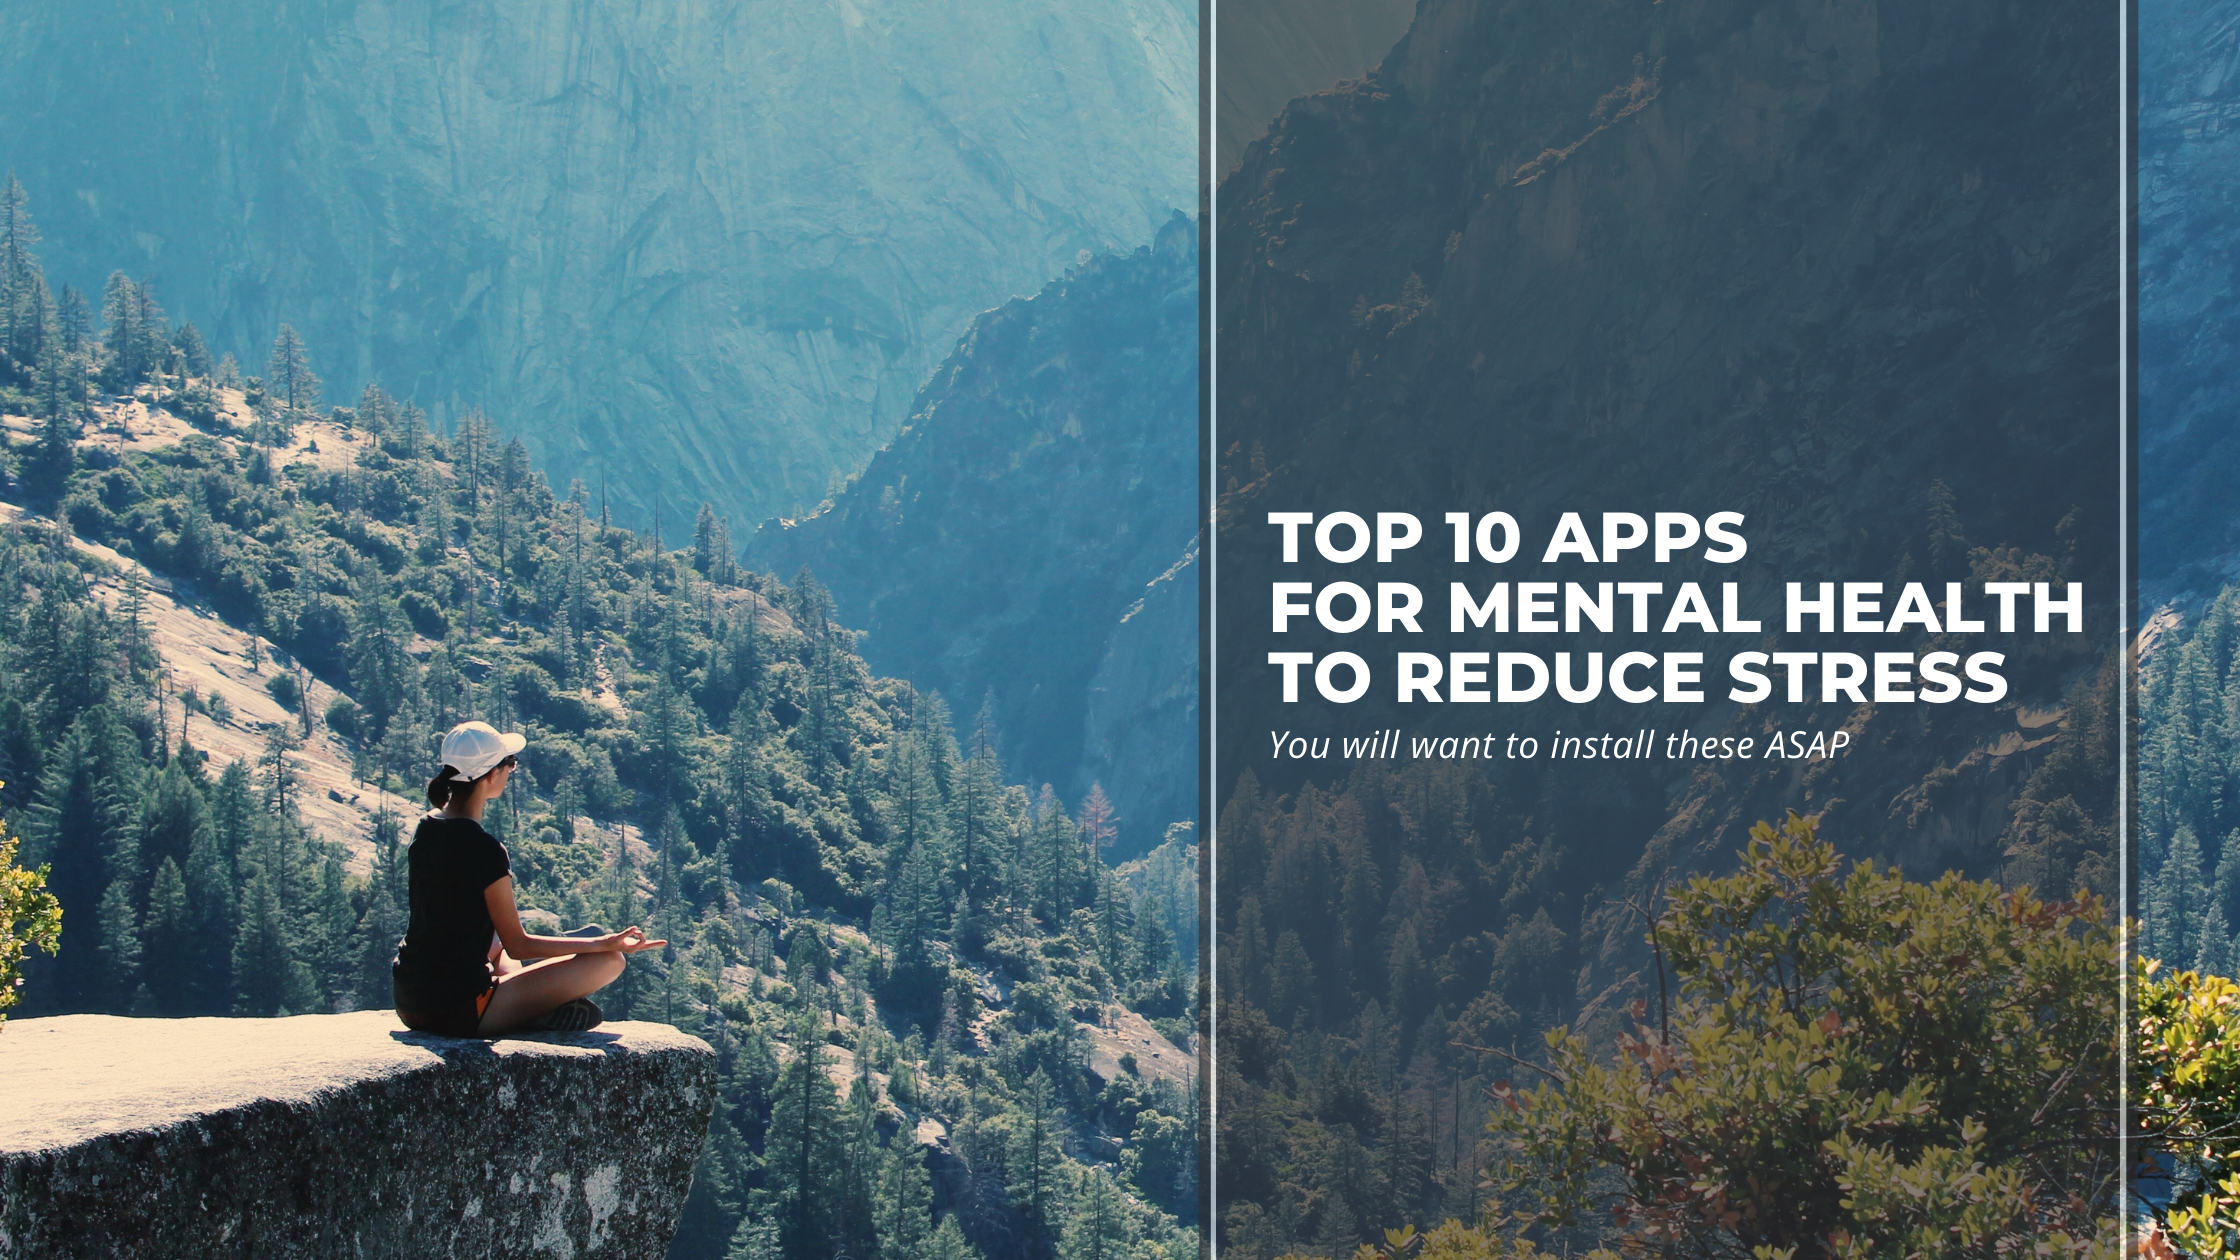 best mental health apps, 10 healthcare apps for Whether you are dealing with depression, loneliness, or need someone to talk, check out our picks for therapy and online counseling, app to mediate, reduce stress and anxiety, agiletech